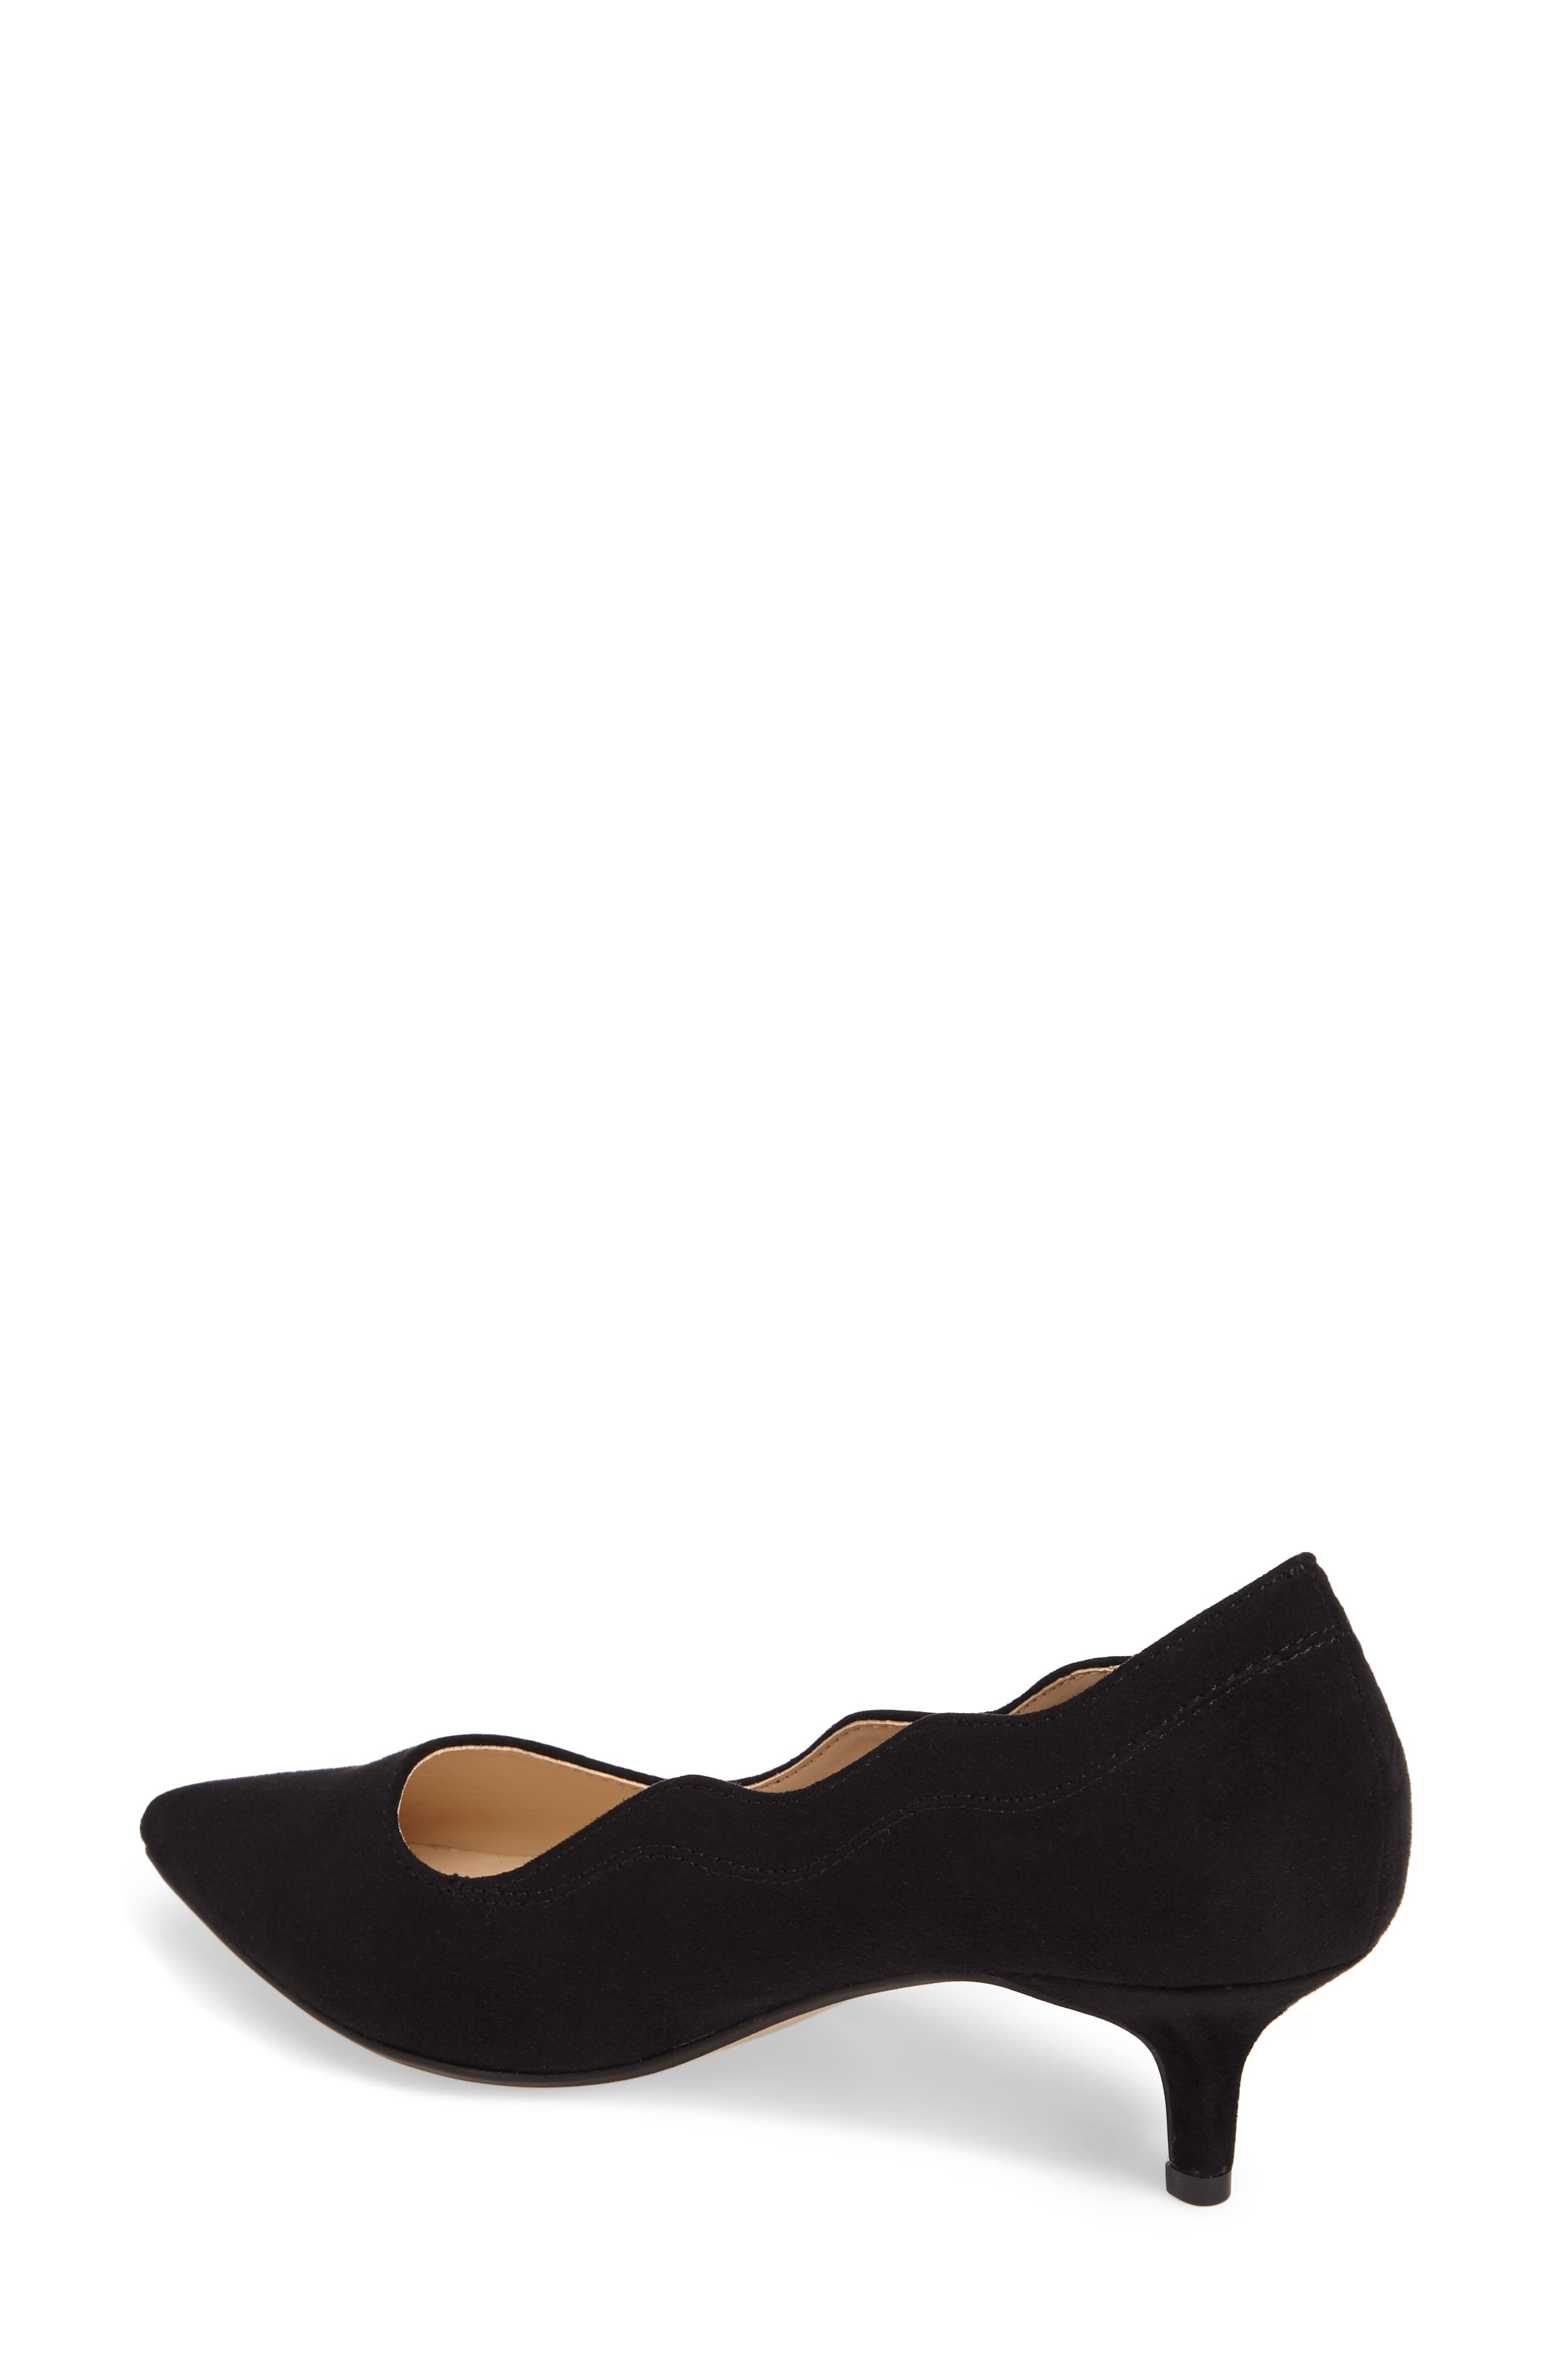 Stormm Pointy Toe Pump,                             Alternate thumbnail 2, color,                             003